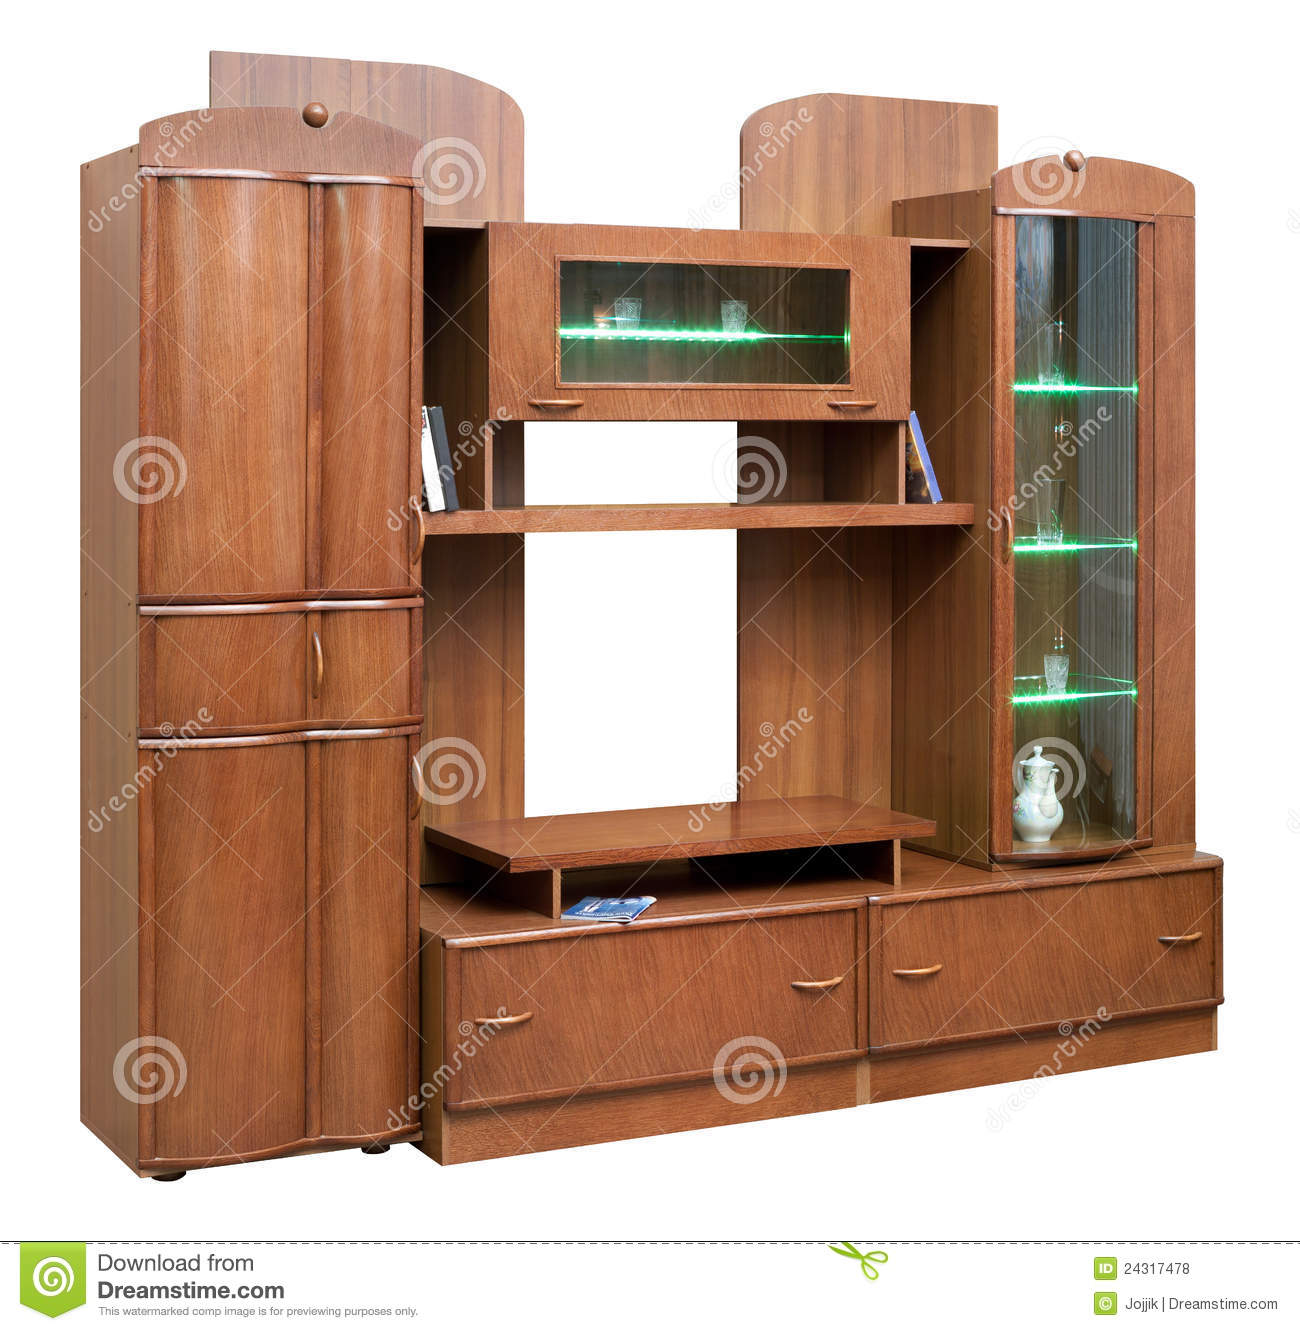 Marvelous photograph of Wooden Cupboard With Glass Doors Royalty Free Stock Photos Image  with #7C472A color and 1300x1331 pixels